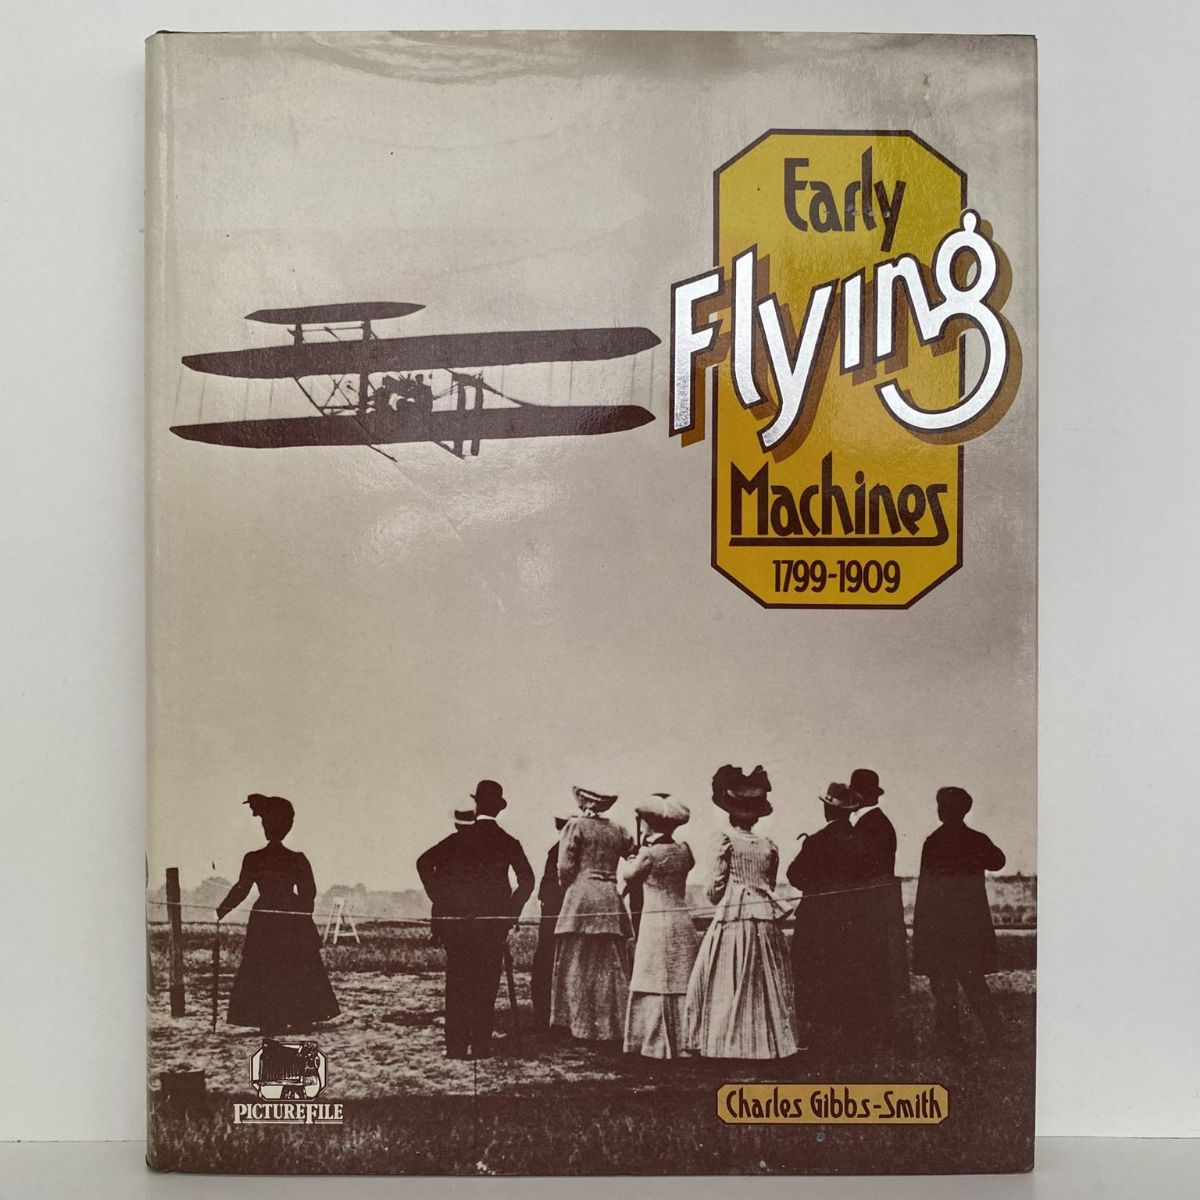 Early Flying Machines 1799-1909 by Charles Gibbs-Smith